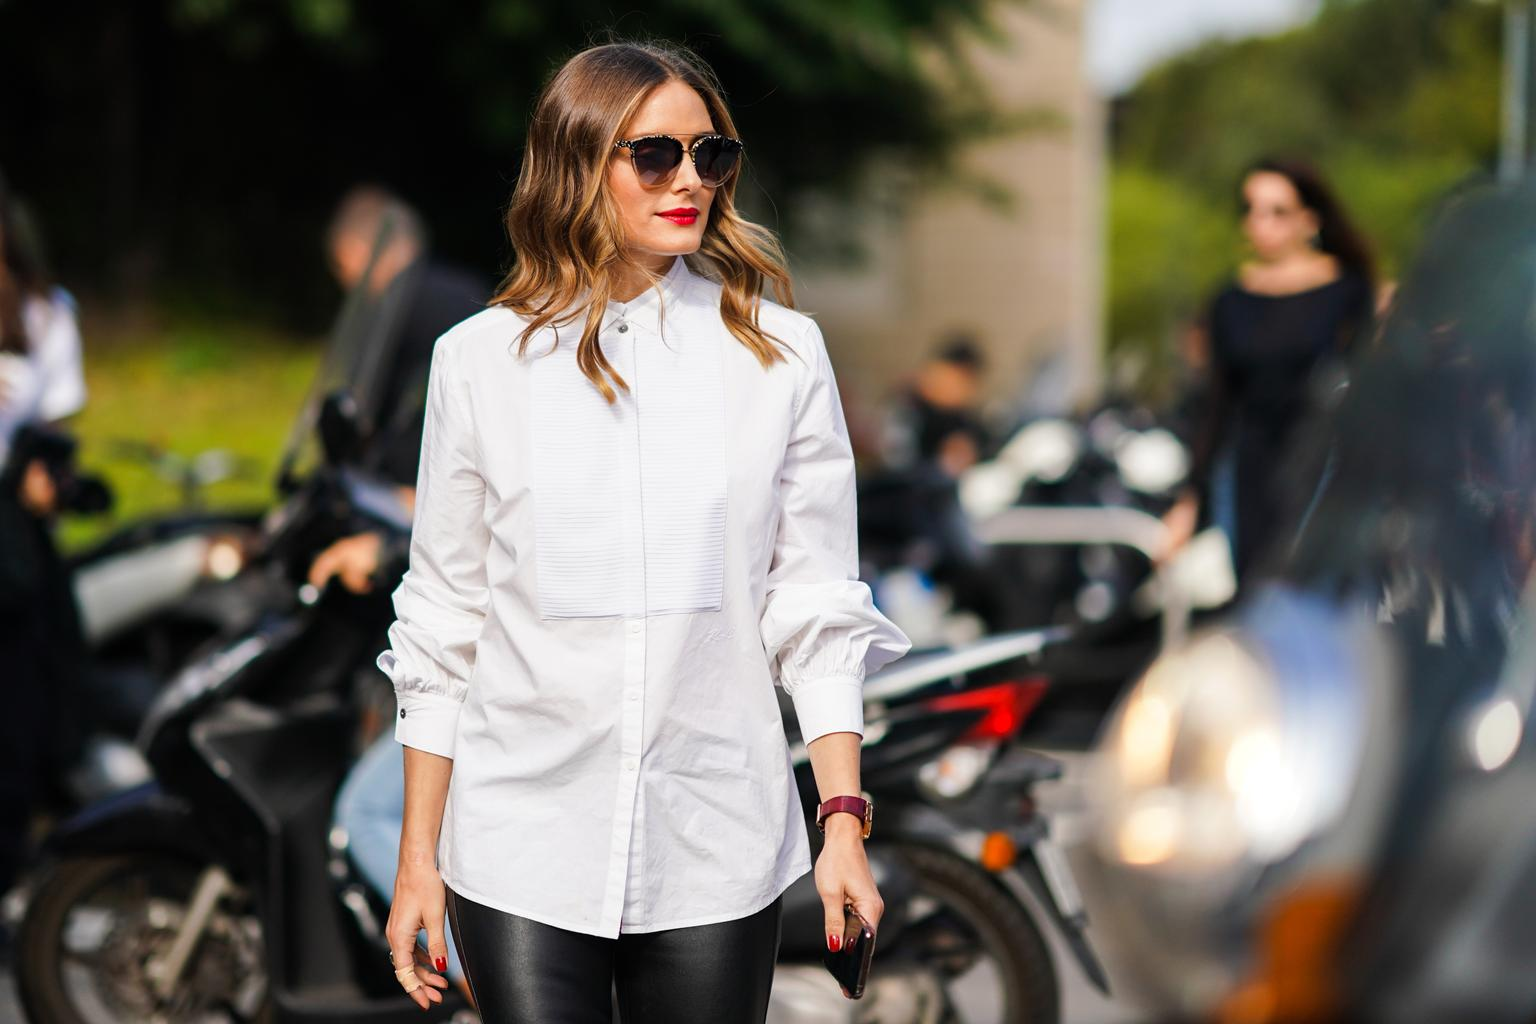 Where Can You Find The Best White Shirts To Significantly